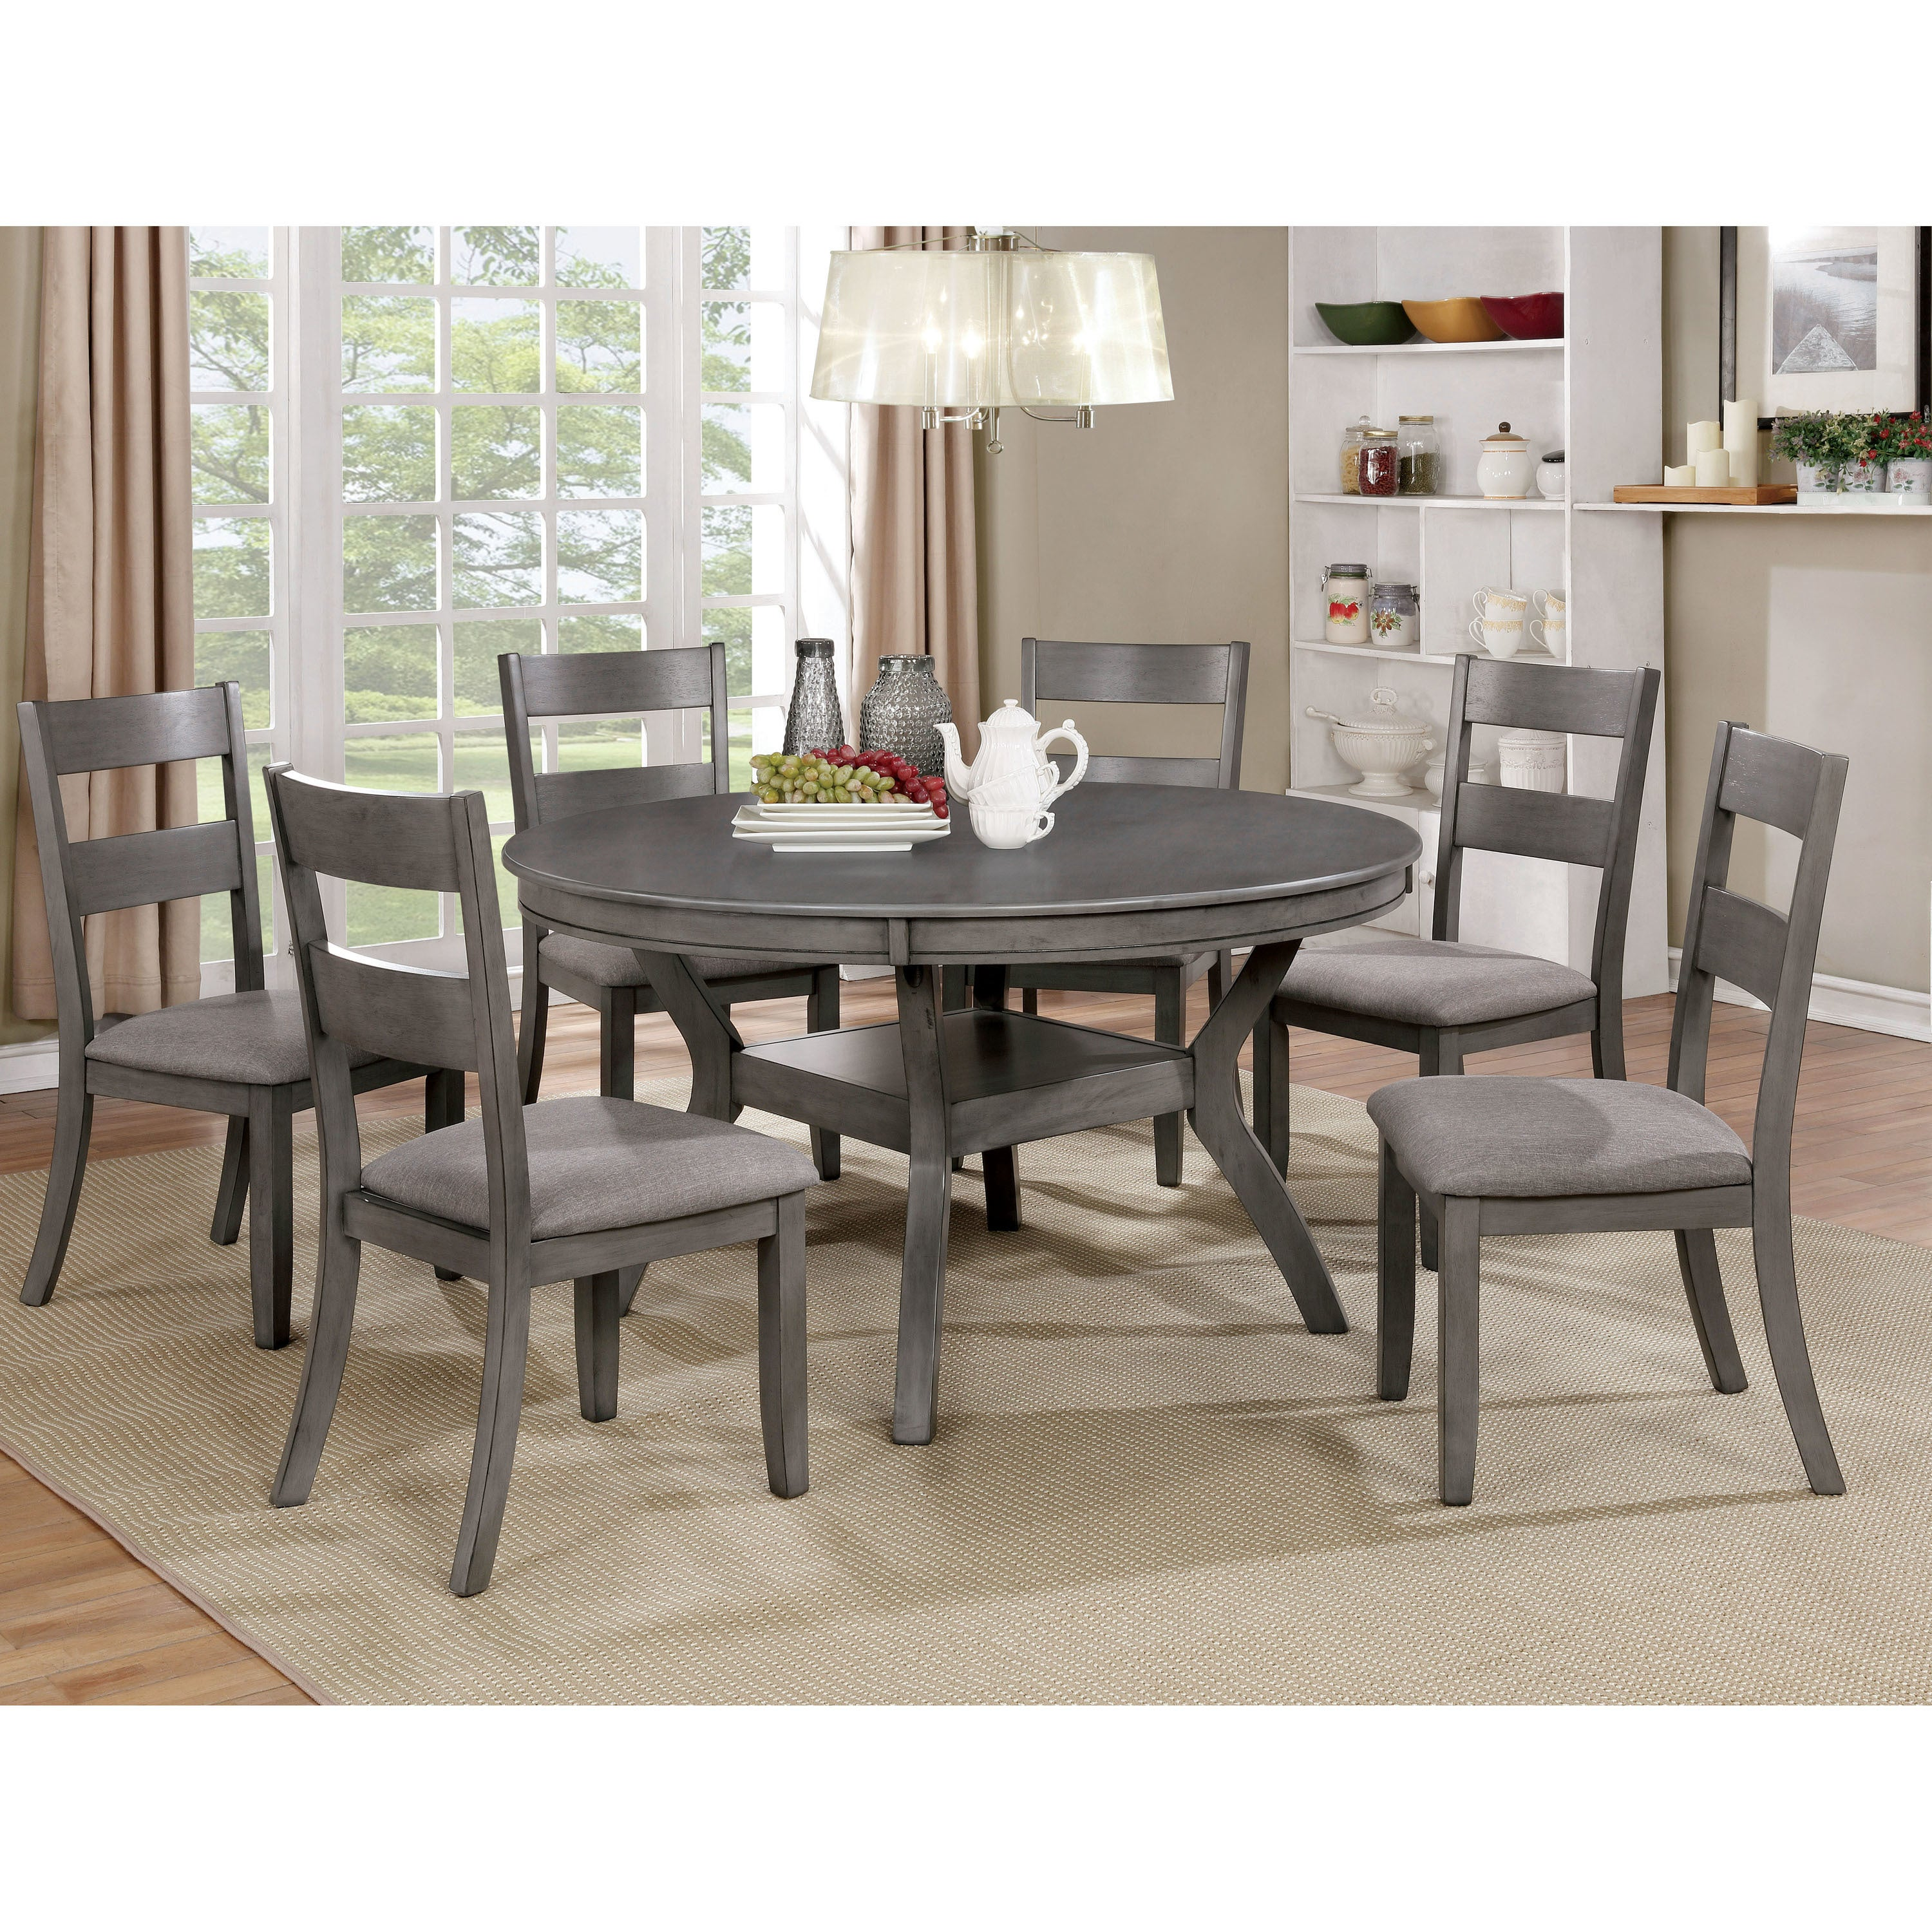 furniture of america relia transitional grey 54 inch round dining